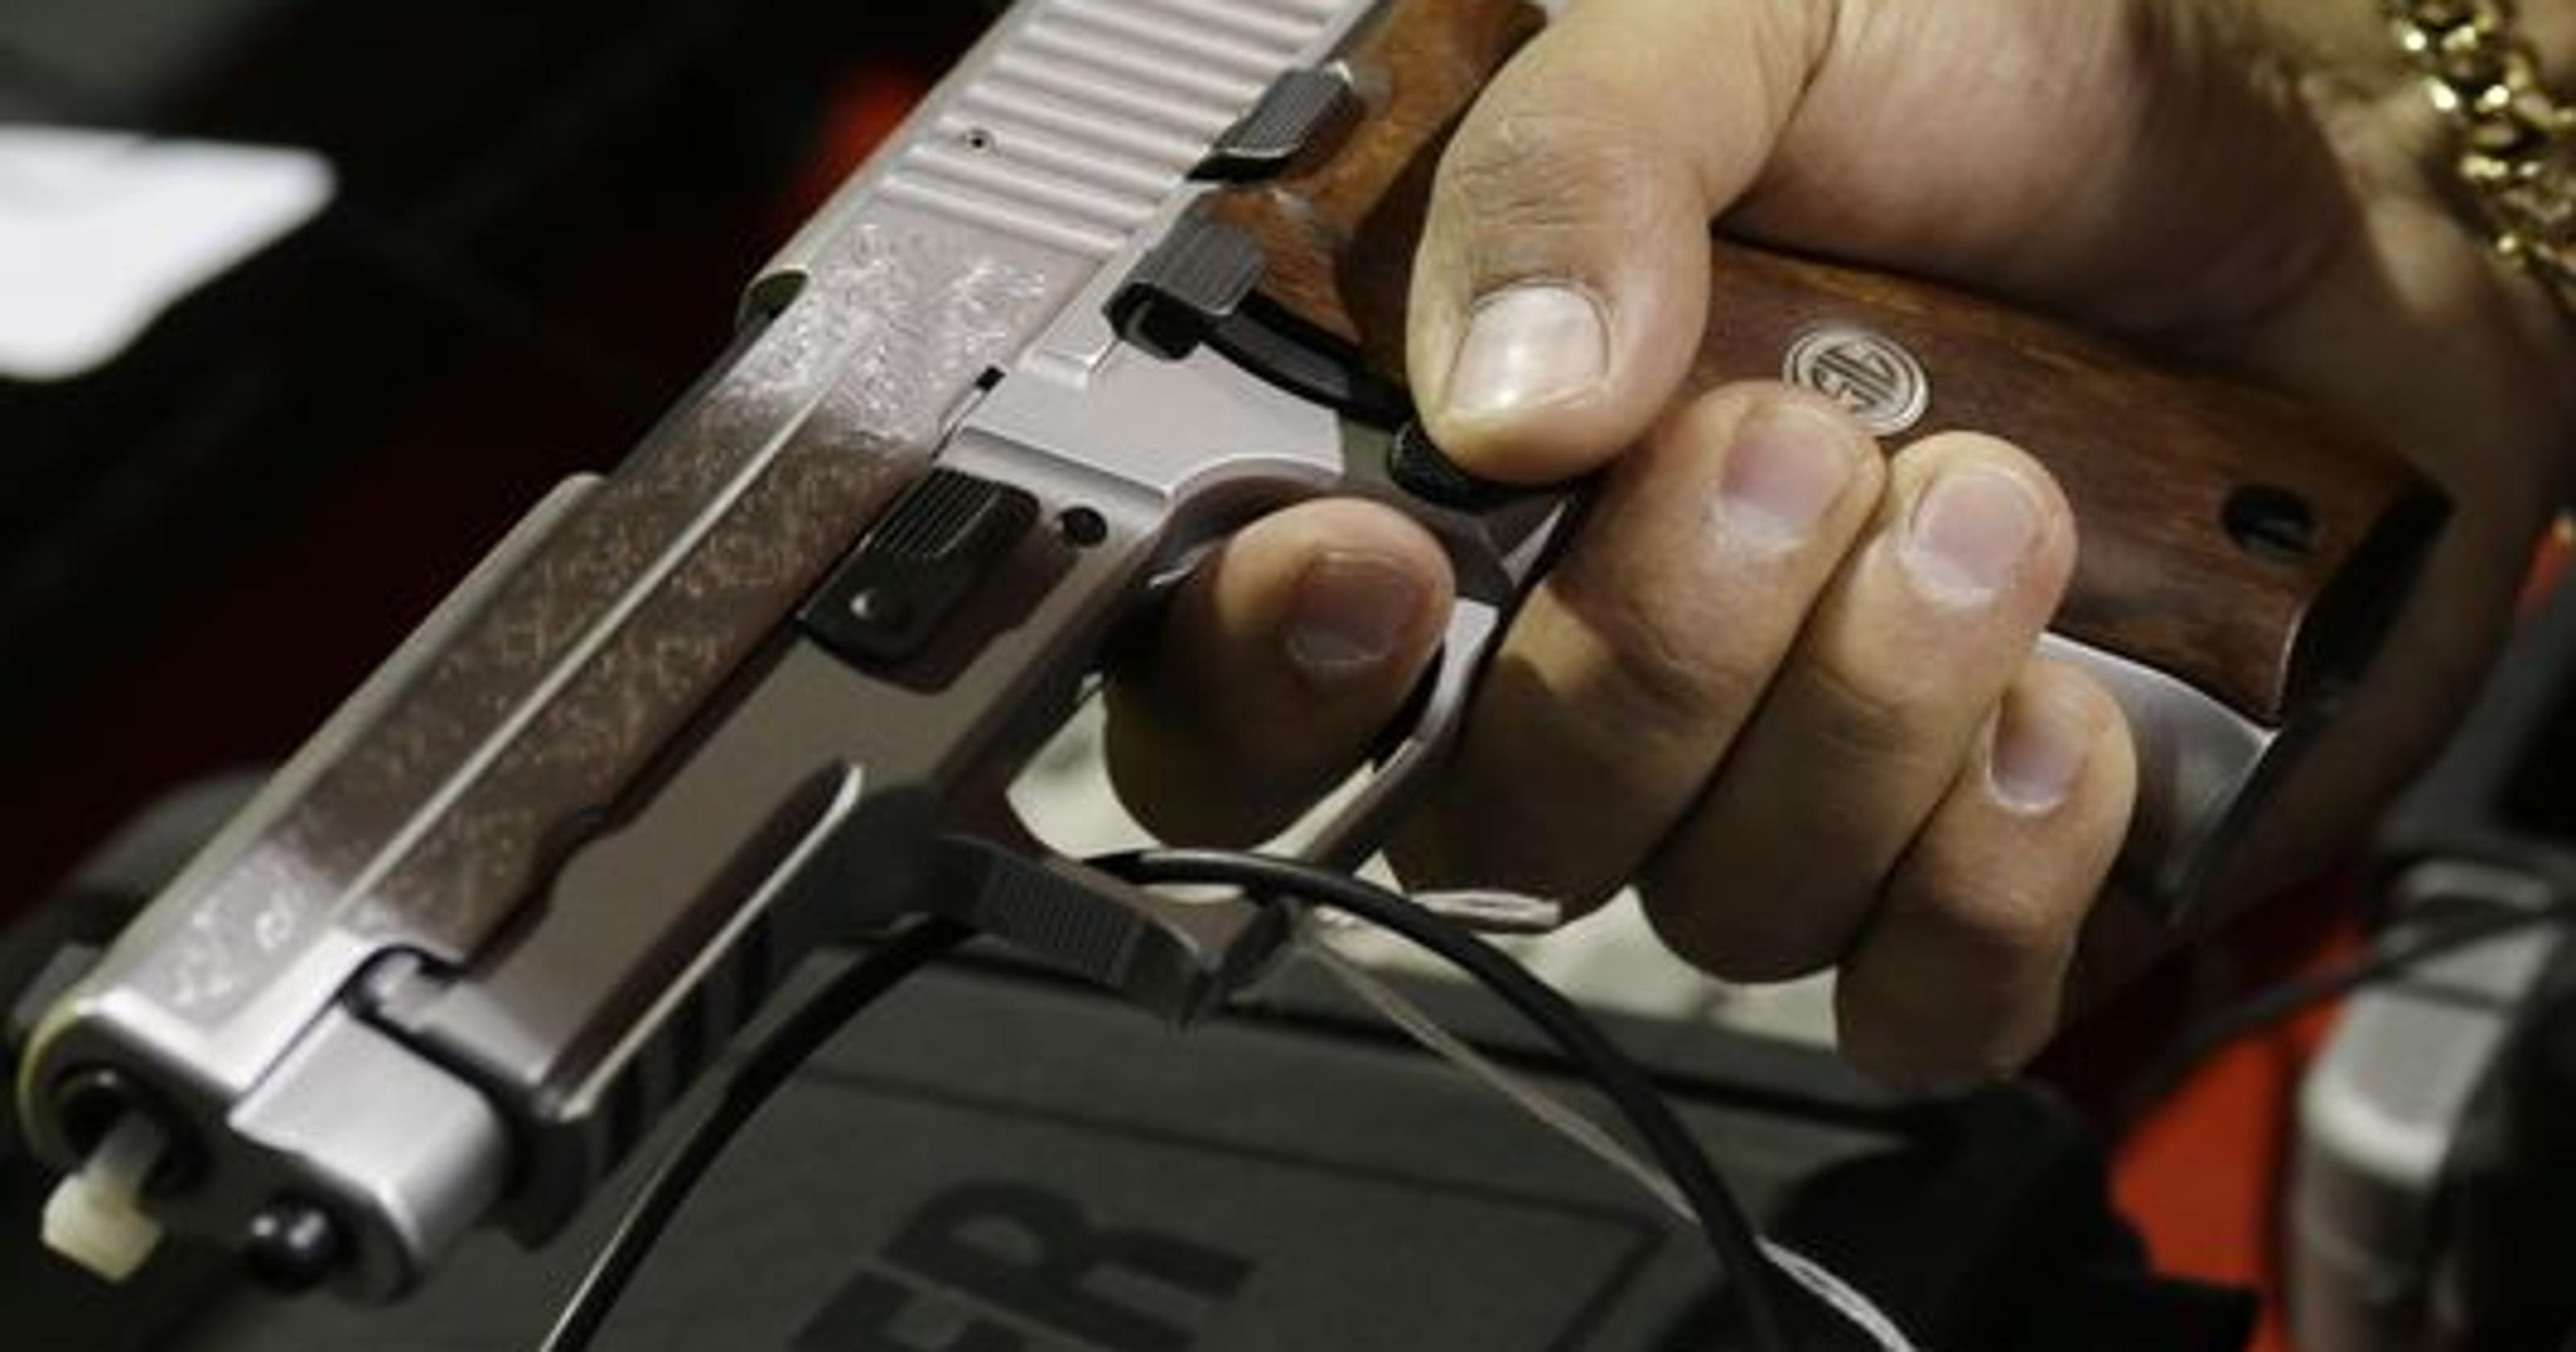 1 in 6 adult Hoosiers have a handgun permit